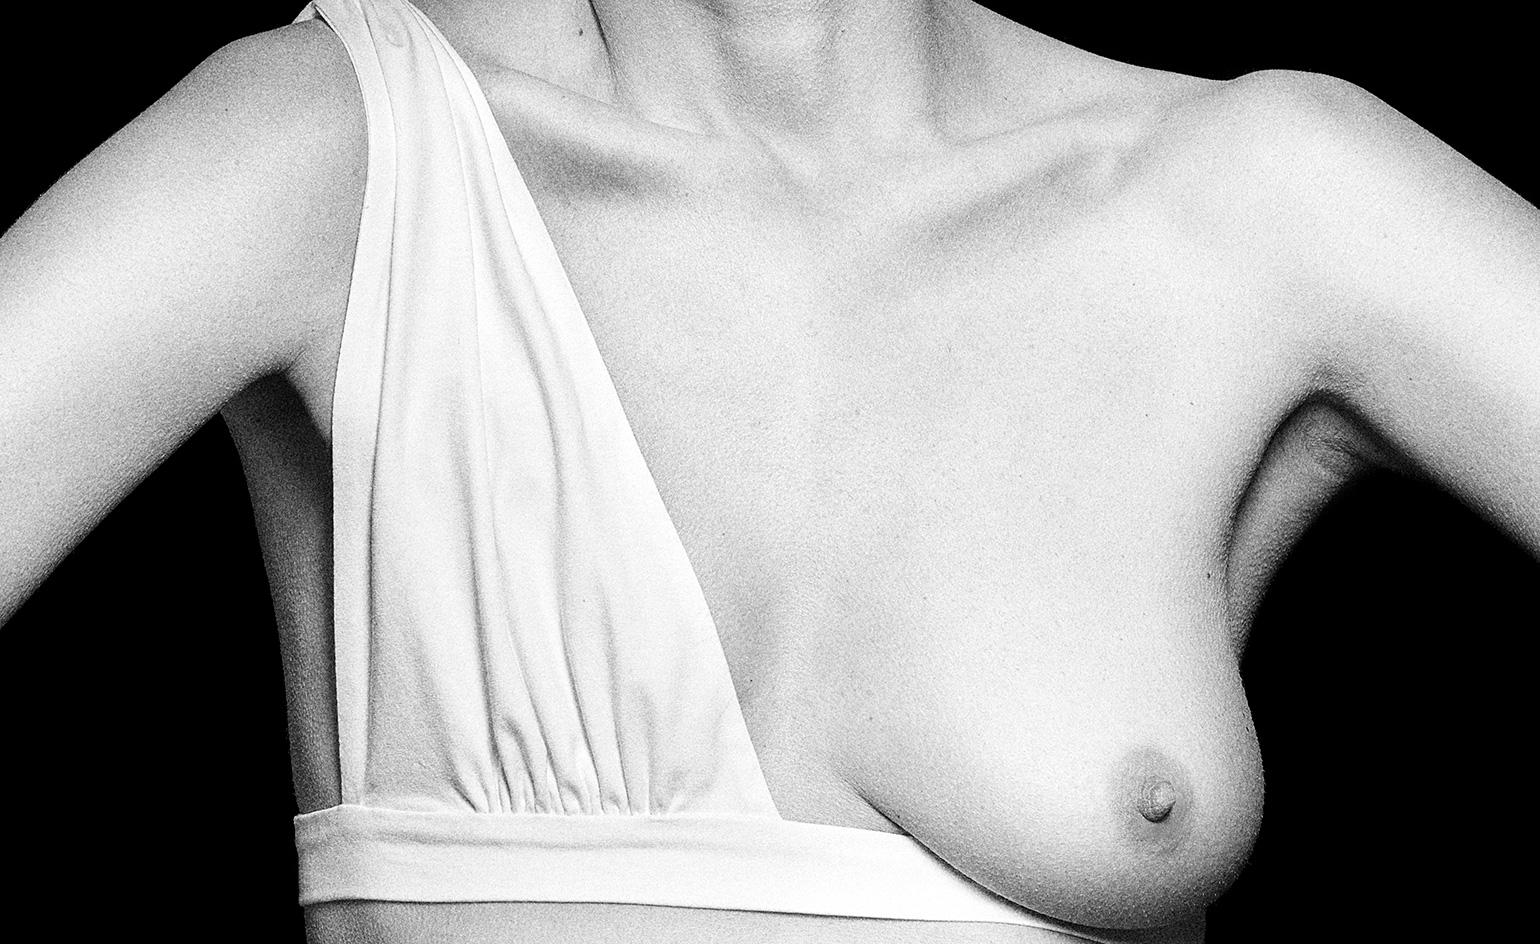 The lingerie brand making 'couture' mastectomy patches